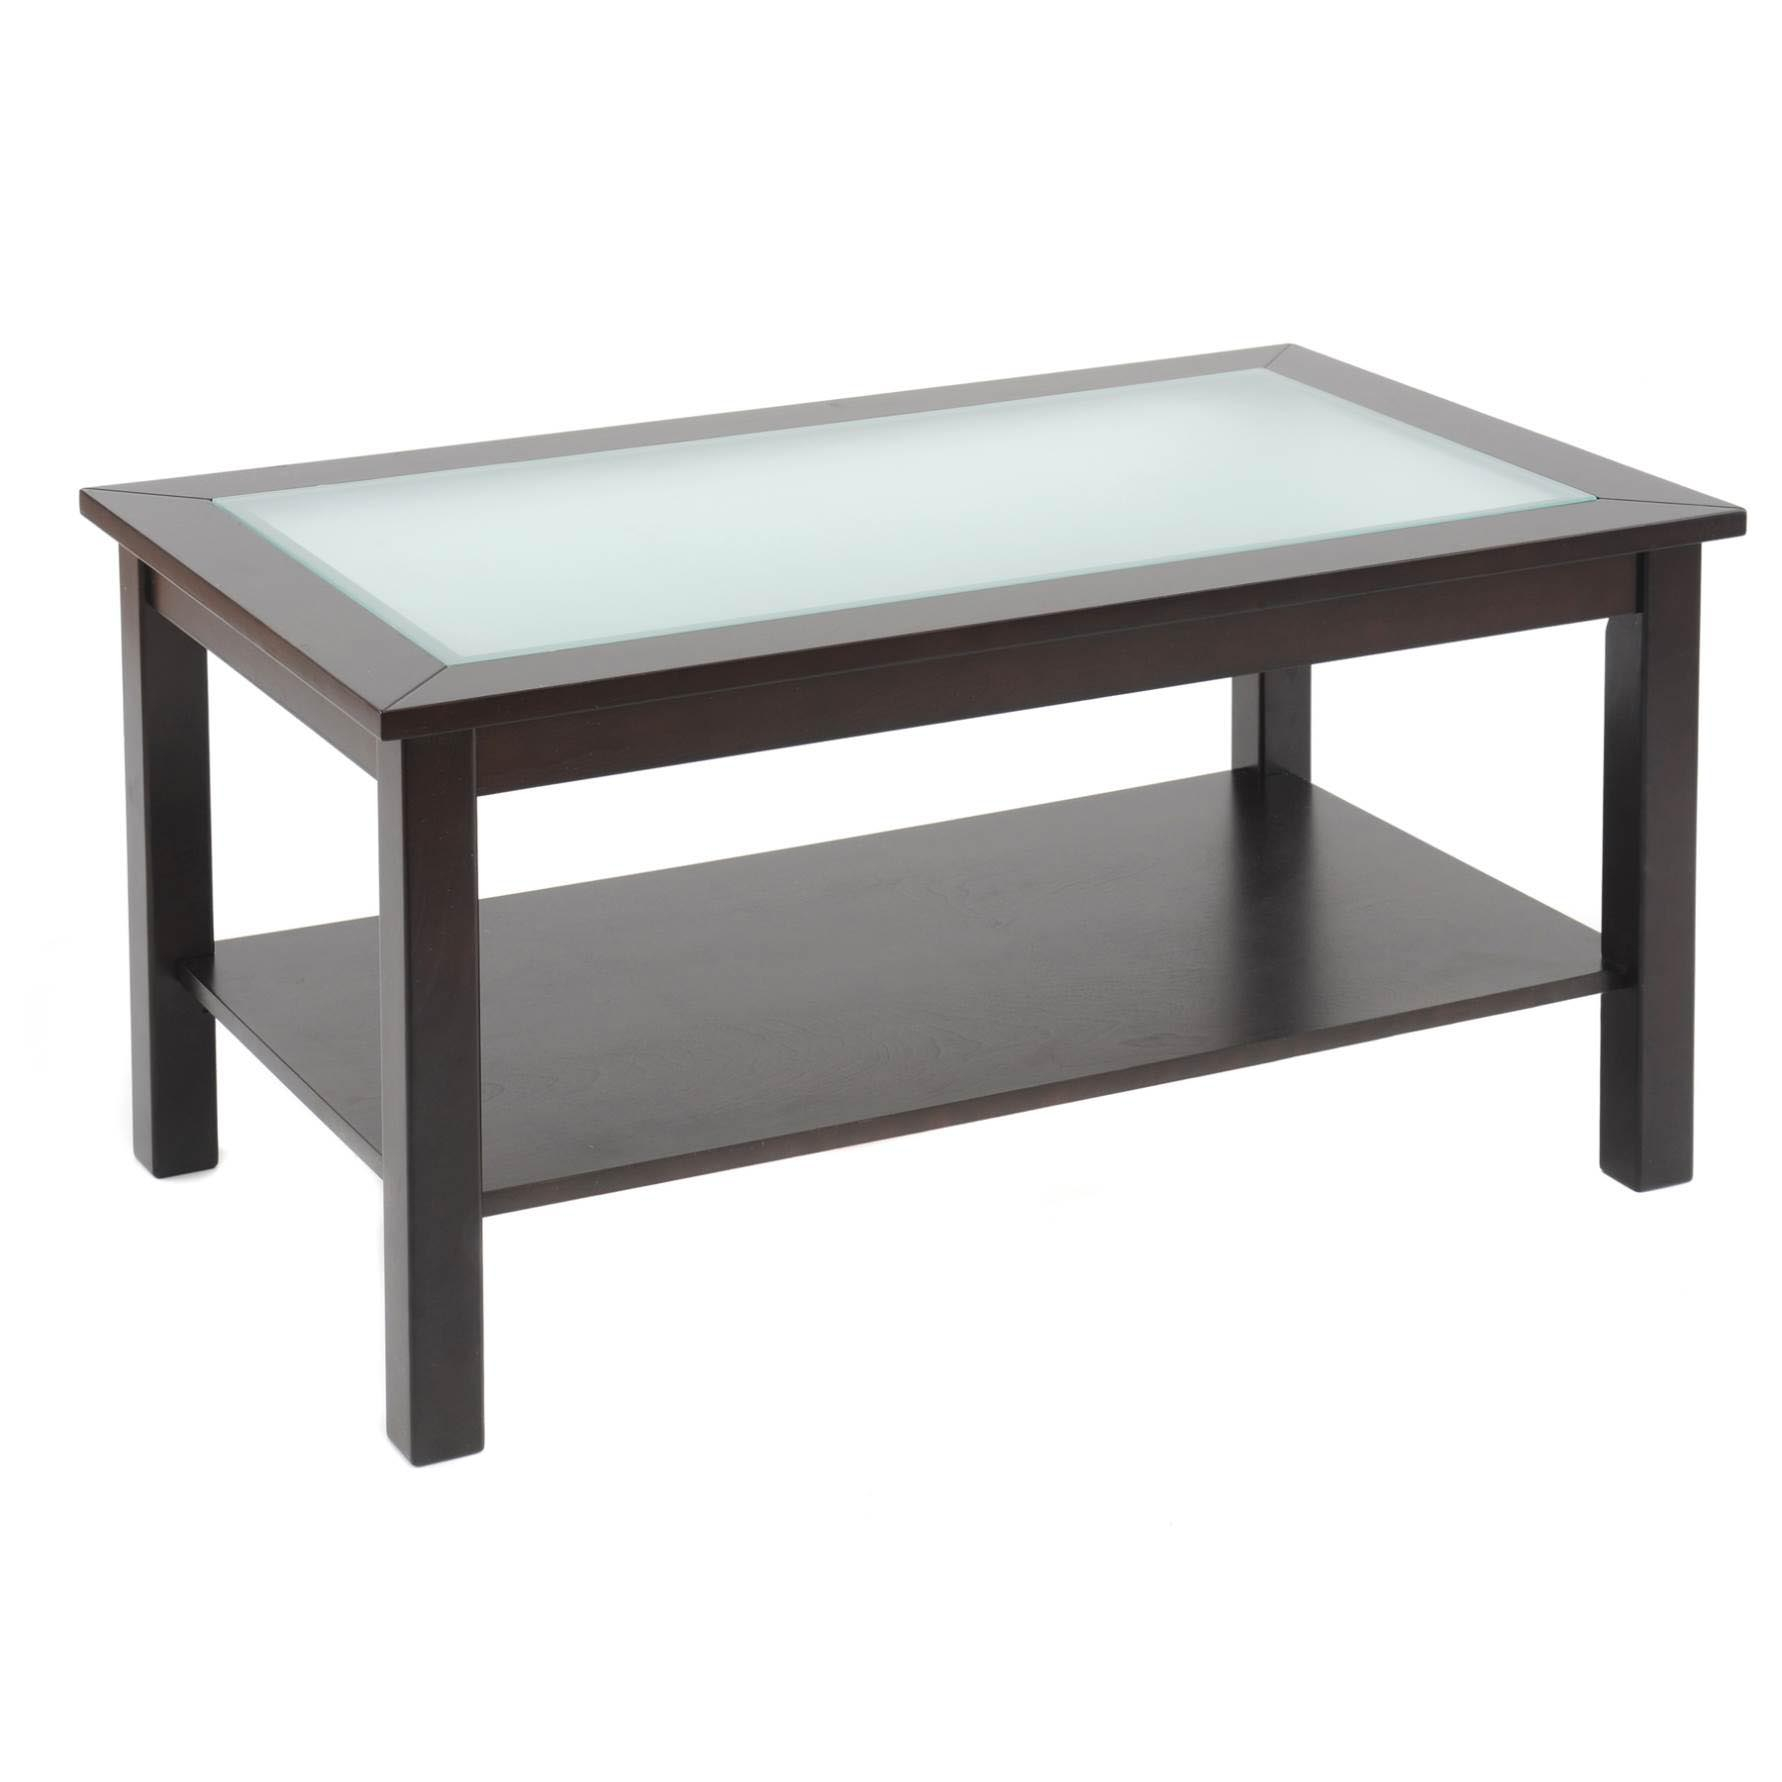 Fullsize Of Contemporary Coffee Tables